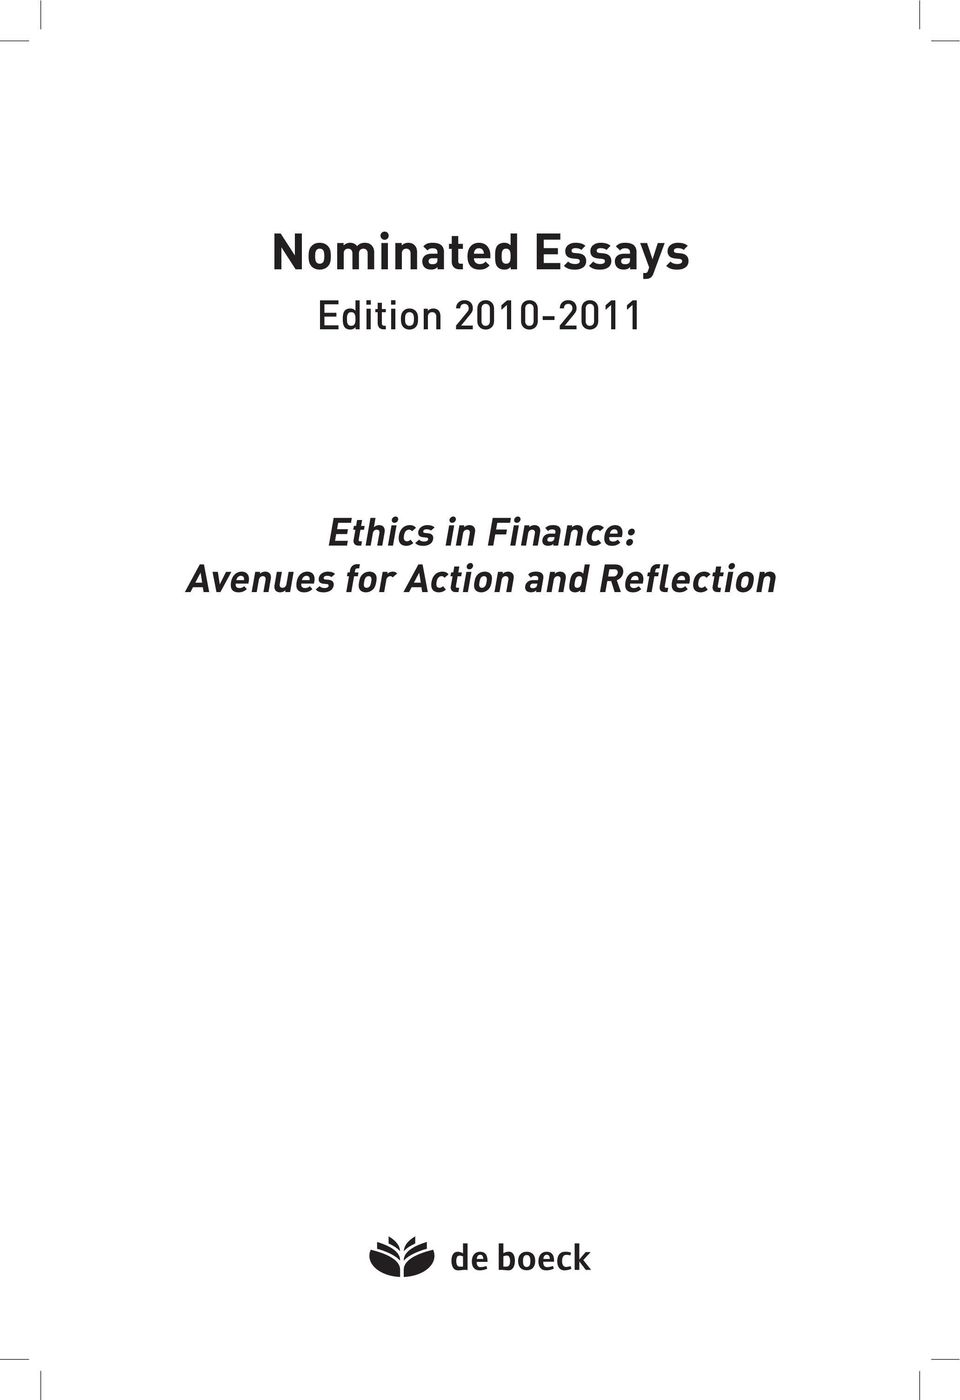 Ethics in Finance: